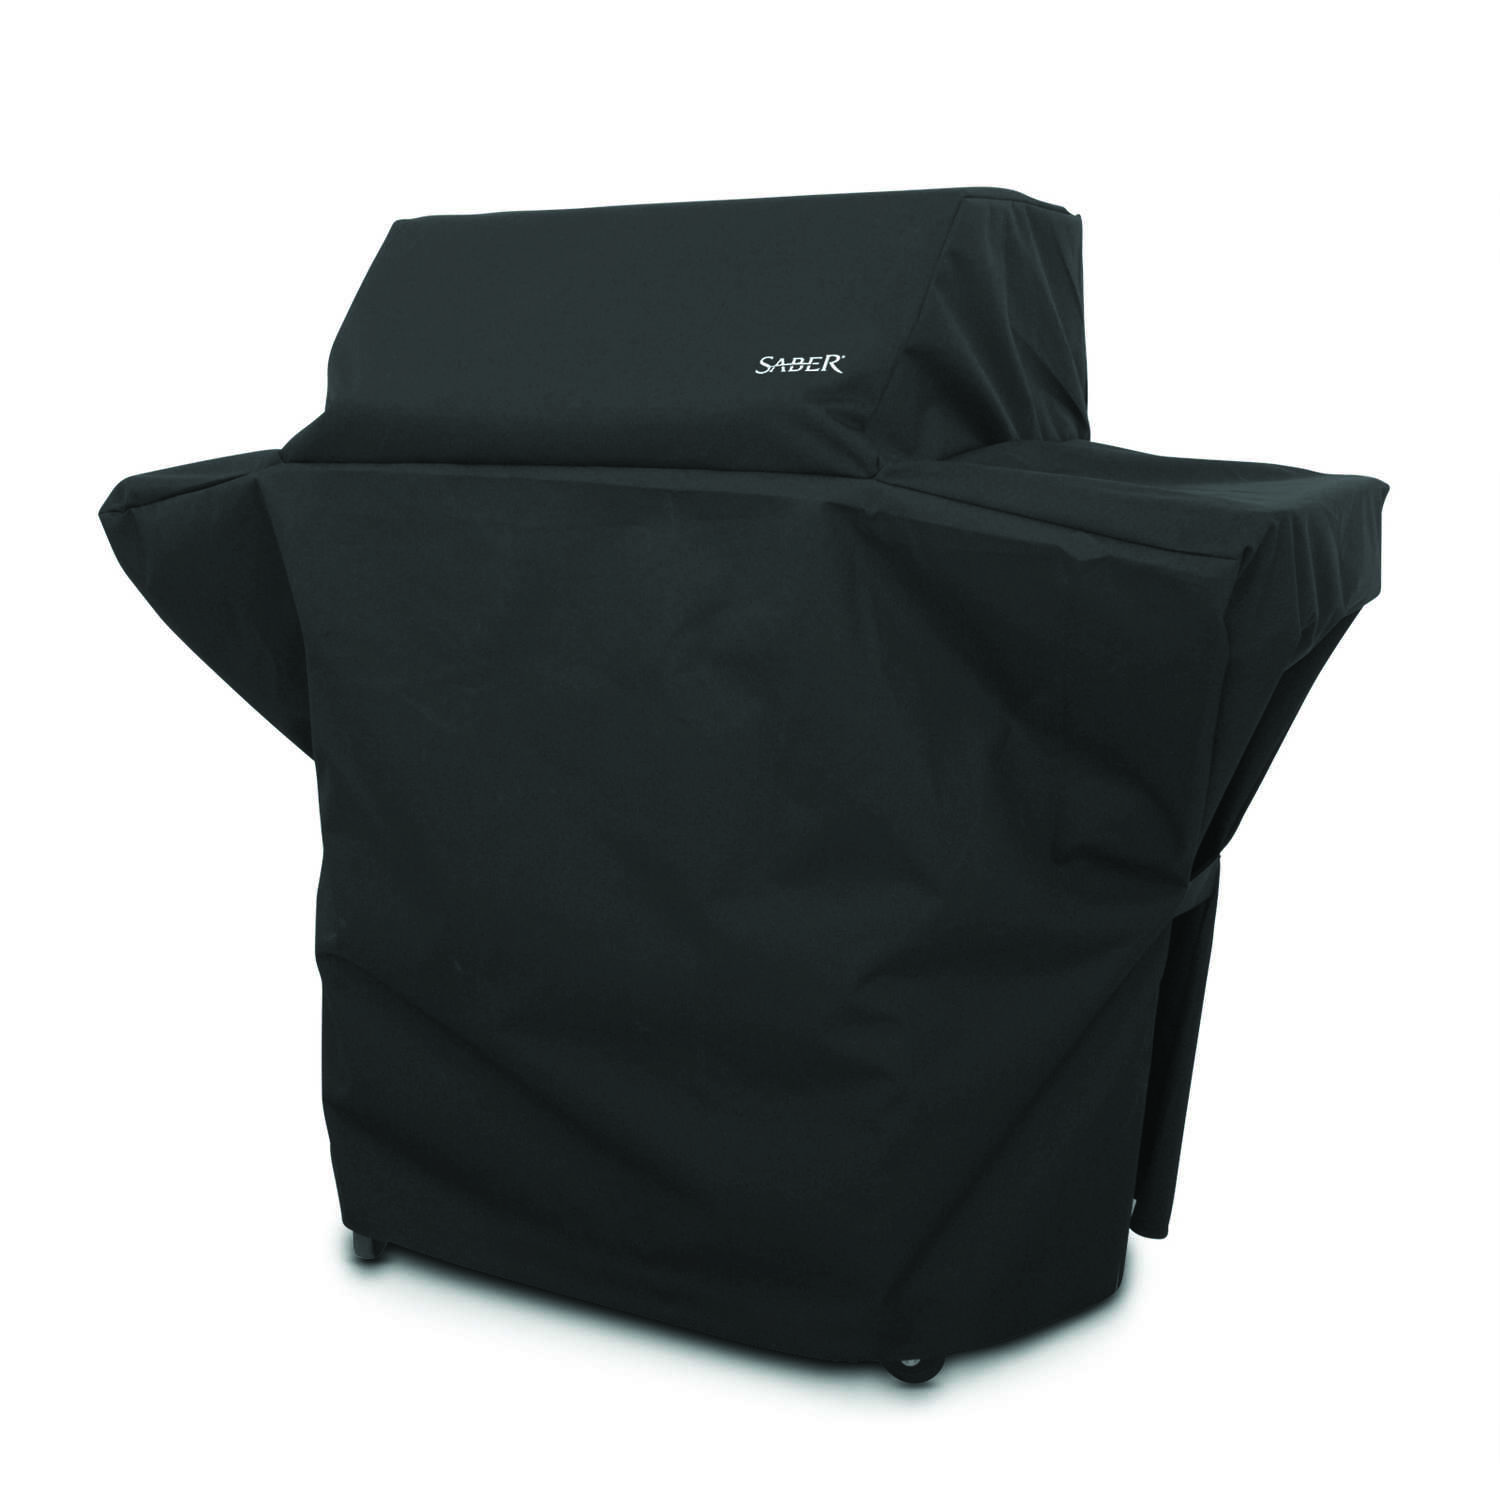 Saber  Black  Grill Cover  57.5 in. W x 26 in. D x 48 in. H For Fits 500 Size Saber Grills